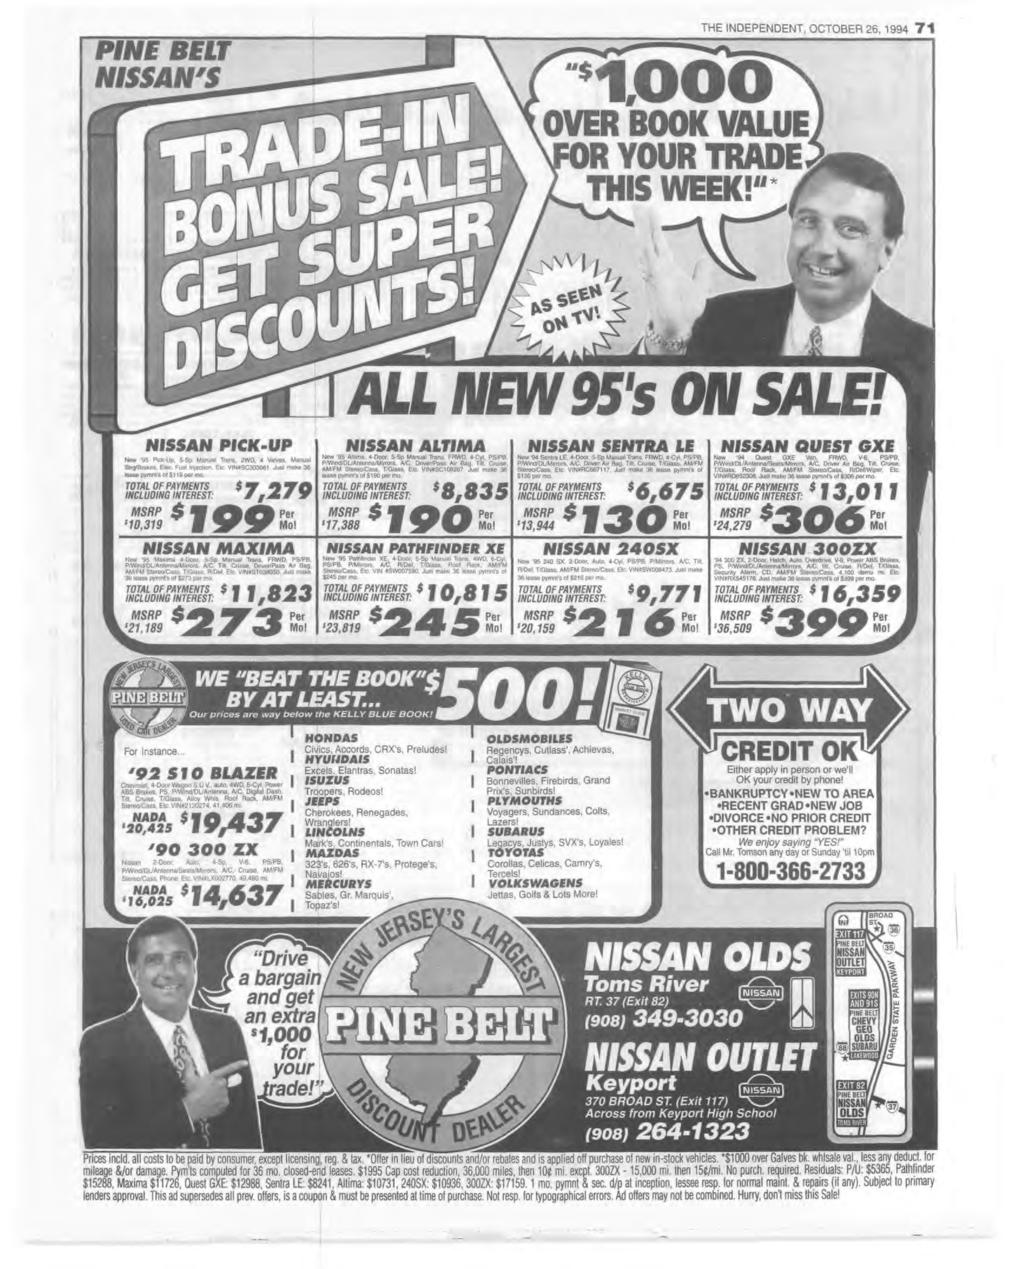 "PNE BELT NSSAN'S THE NDEPENDENT, OCTOBER 26,1994 7 1 r t o o o i OVER BOOK VALUE 0R YOUR TRADE] THS WEEK!""H 4 tm '* A L L N E W 9 5 s O N S A L E!"